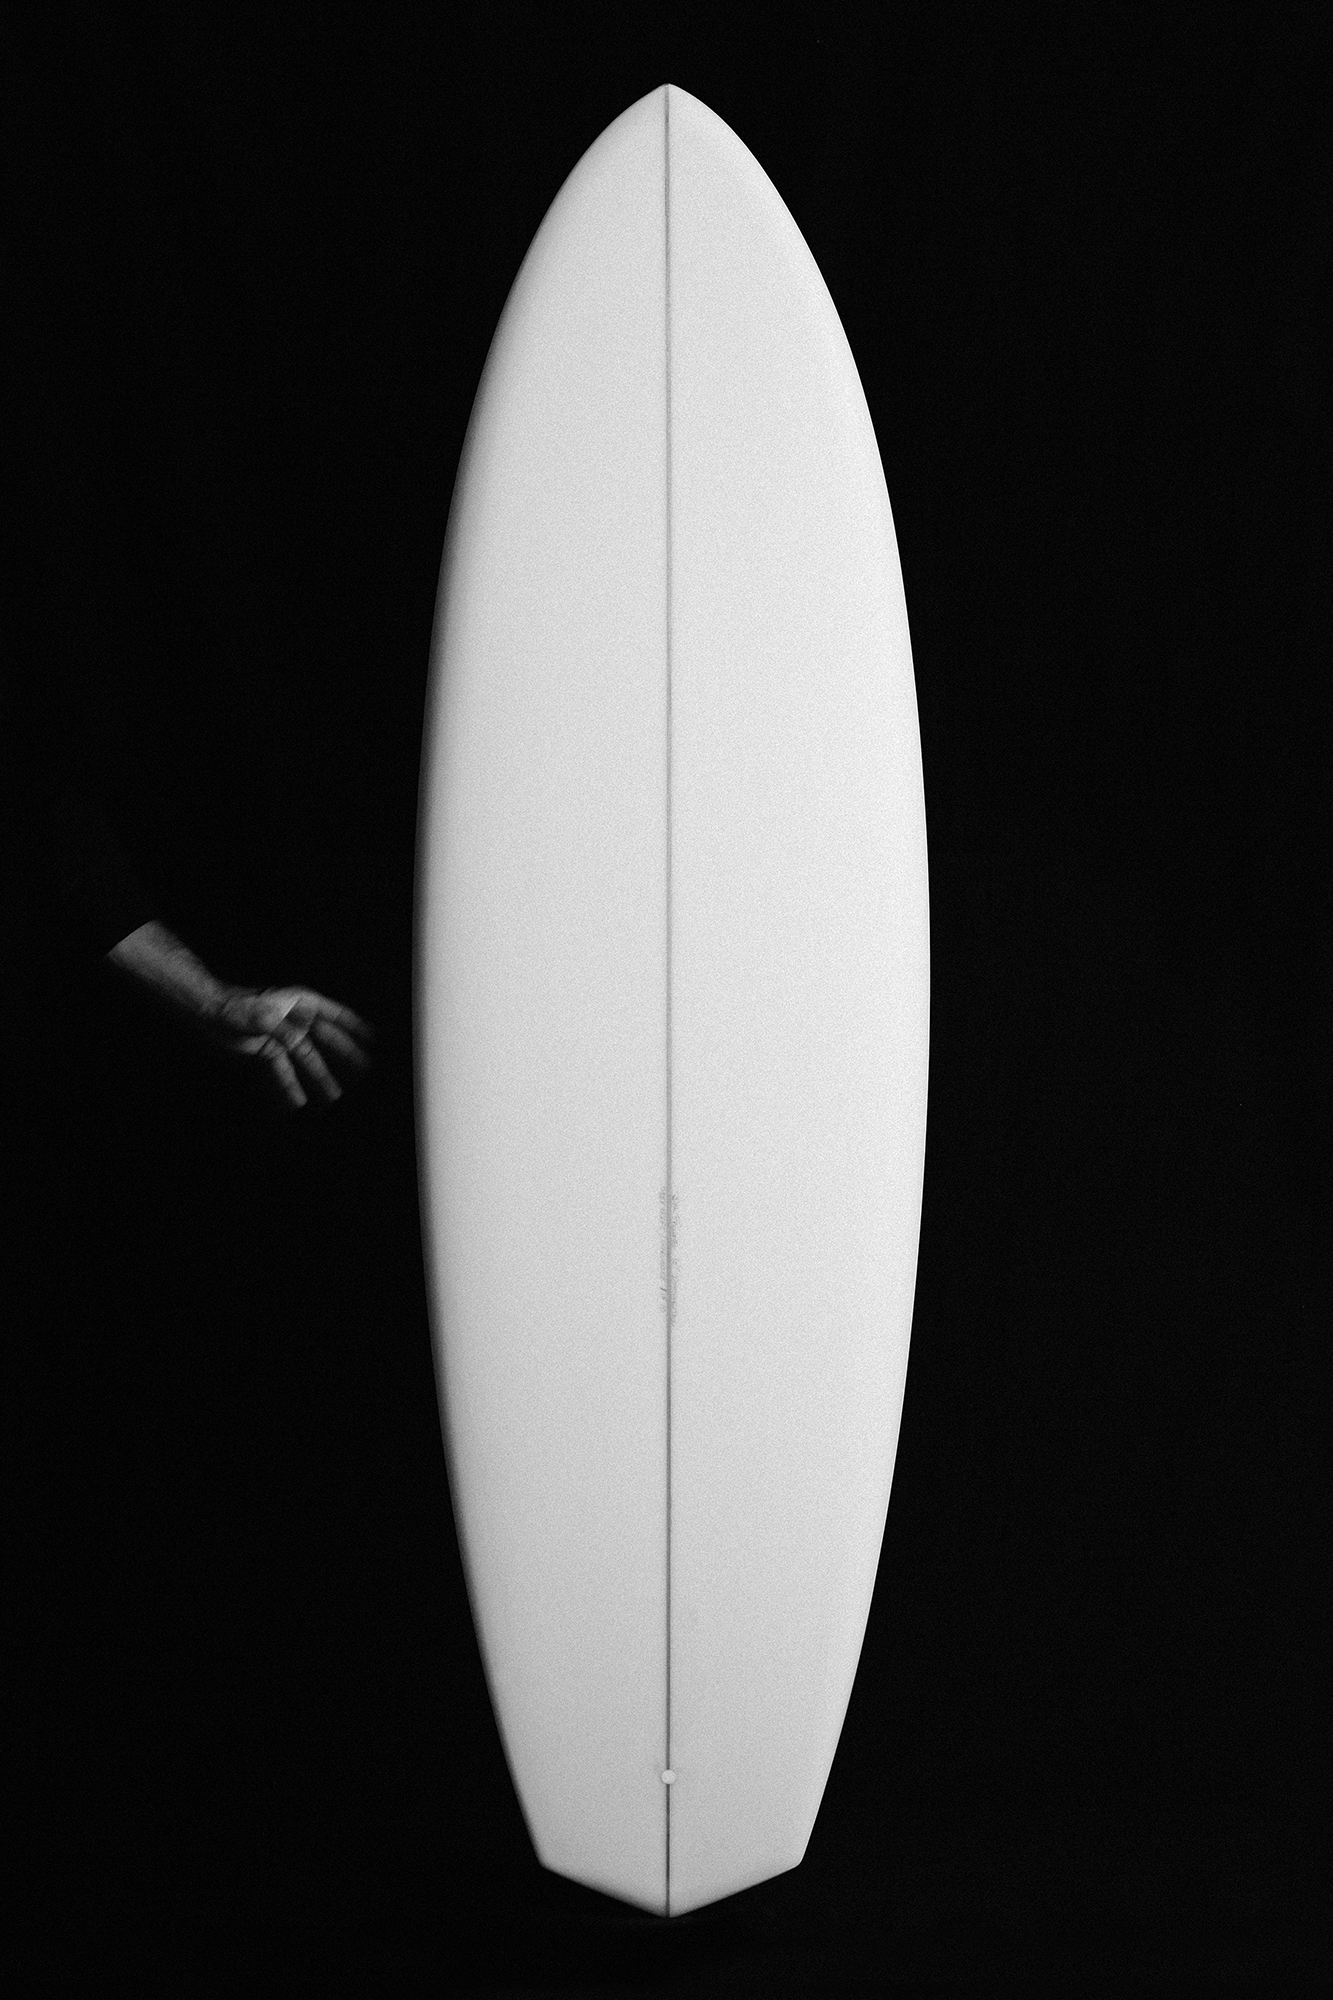 AK Single - Falcone Surfboard - Julien Roubinet 1.jpg